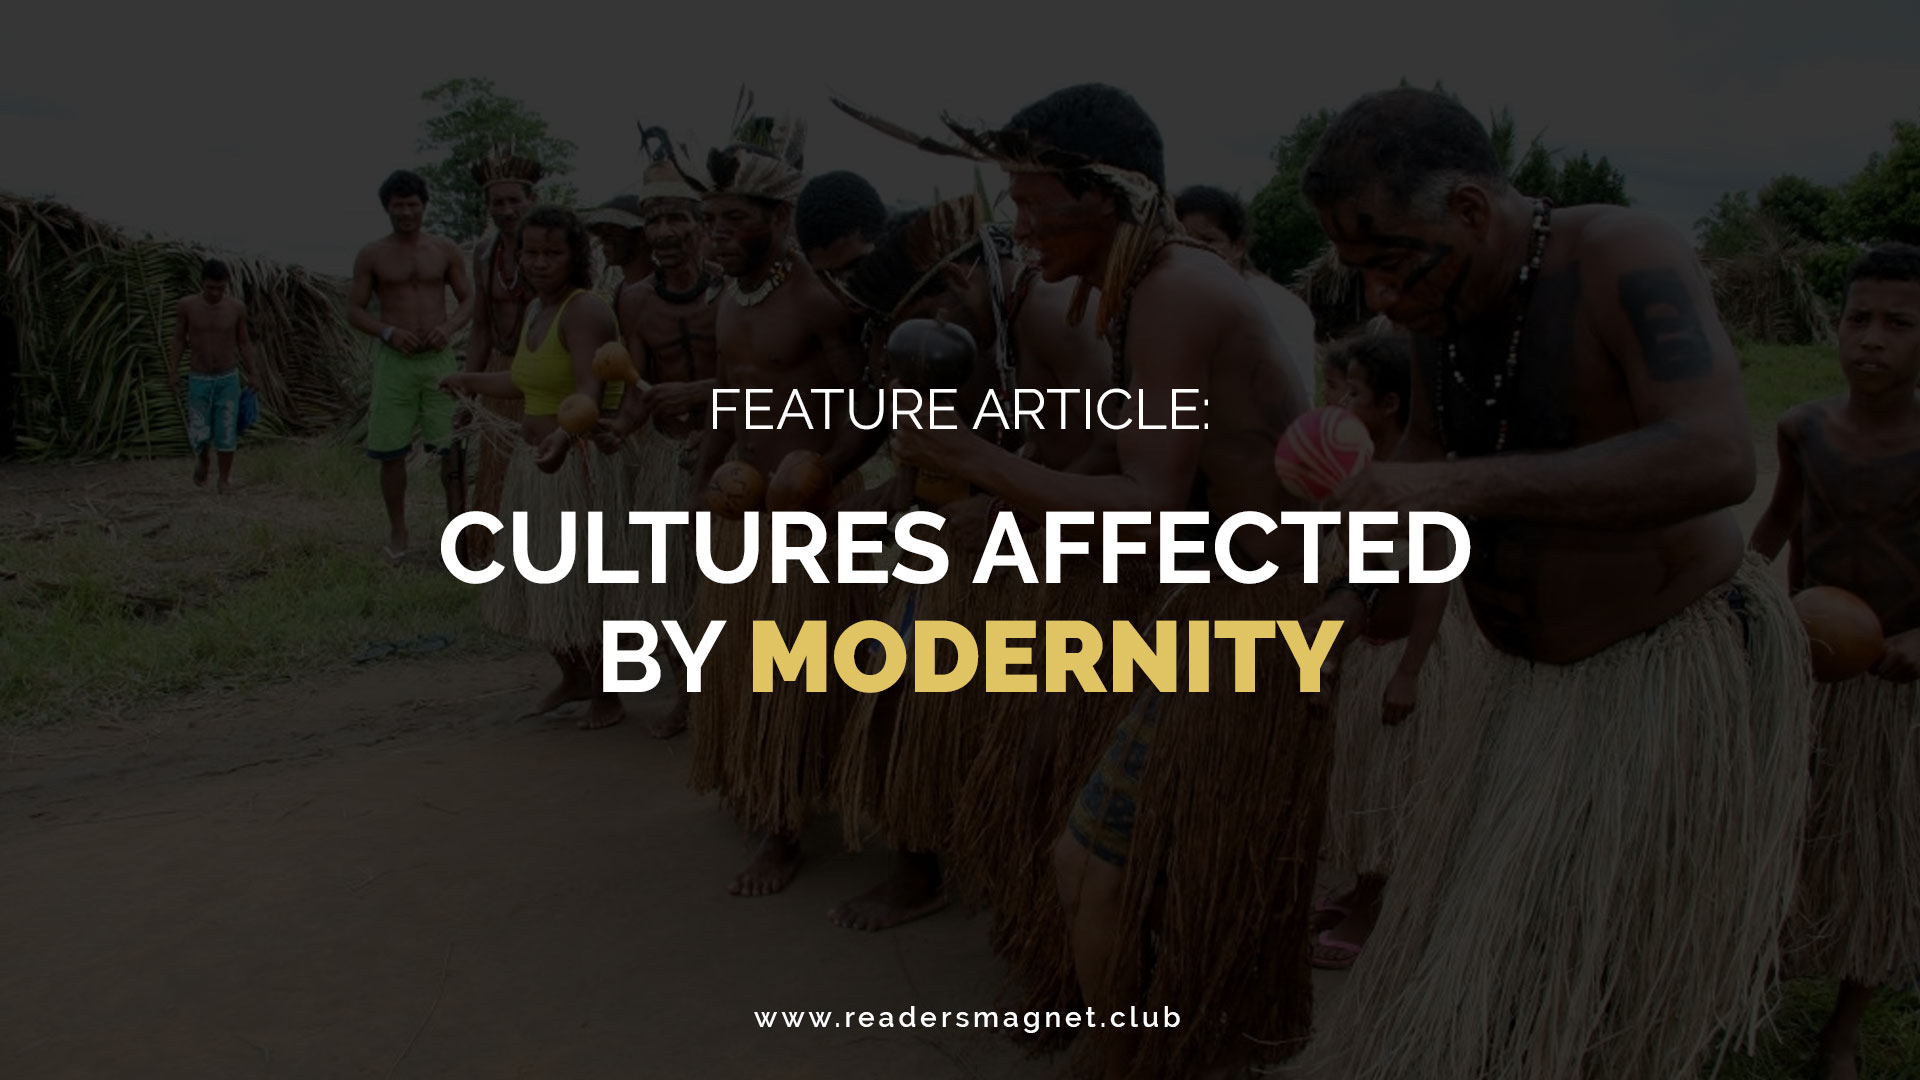 Cultures-Affected-by-Modernity banner